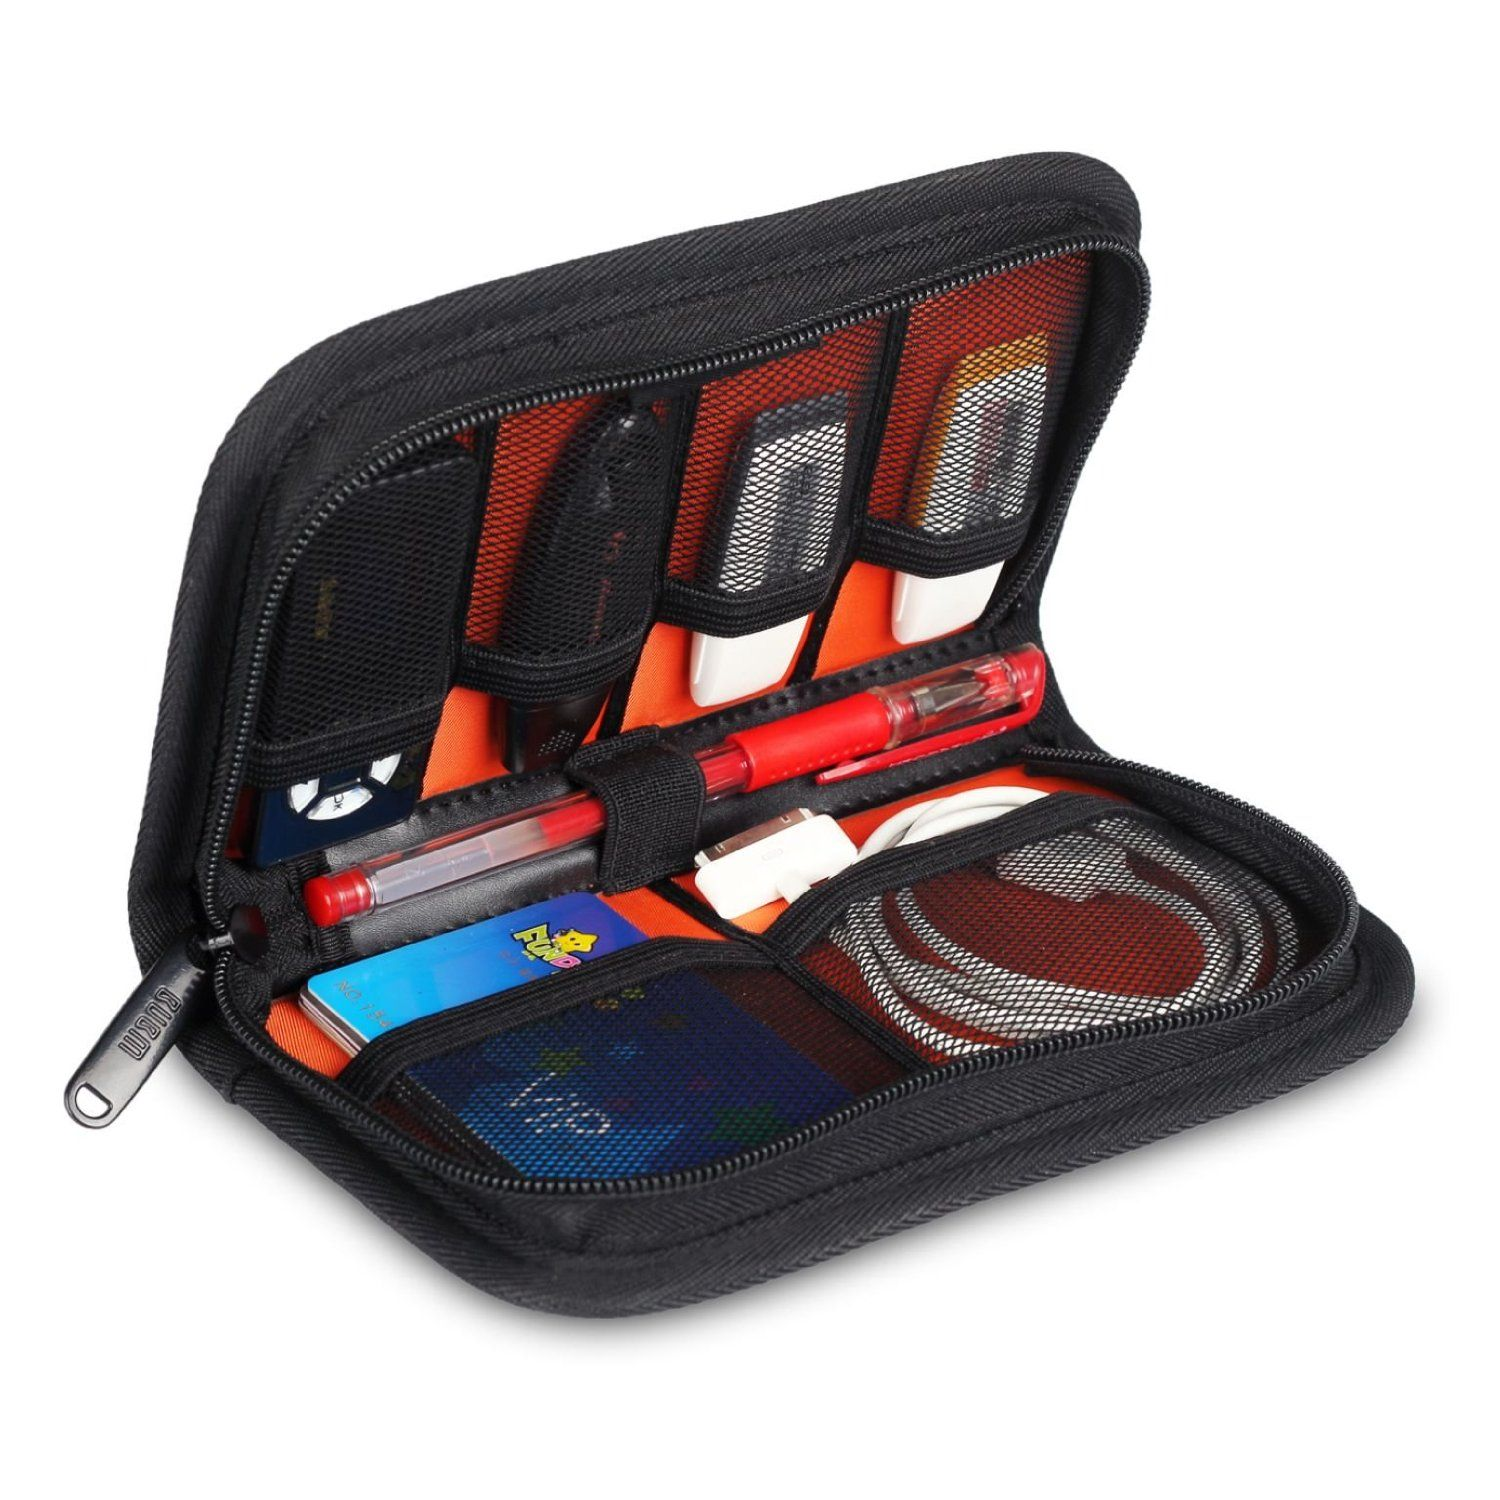 Carrying Case Wallet Bag for -j-uu-ls /& USB Charger Rose Travel Storage case for Your Pocket or Hand Bags Device not Included